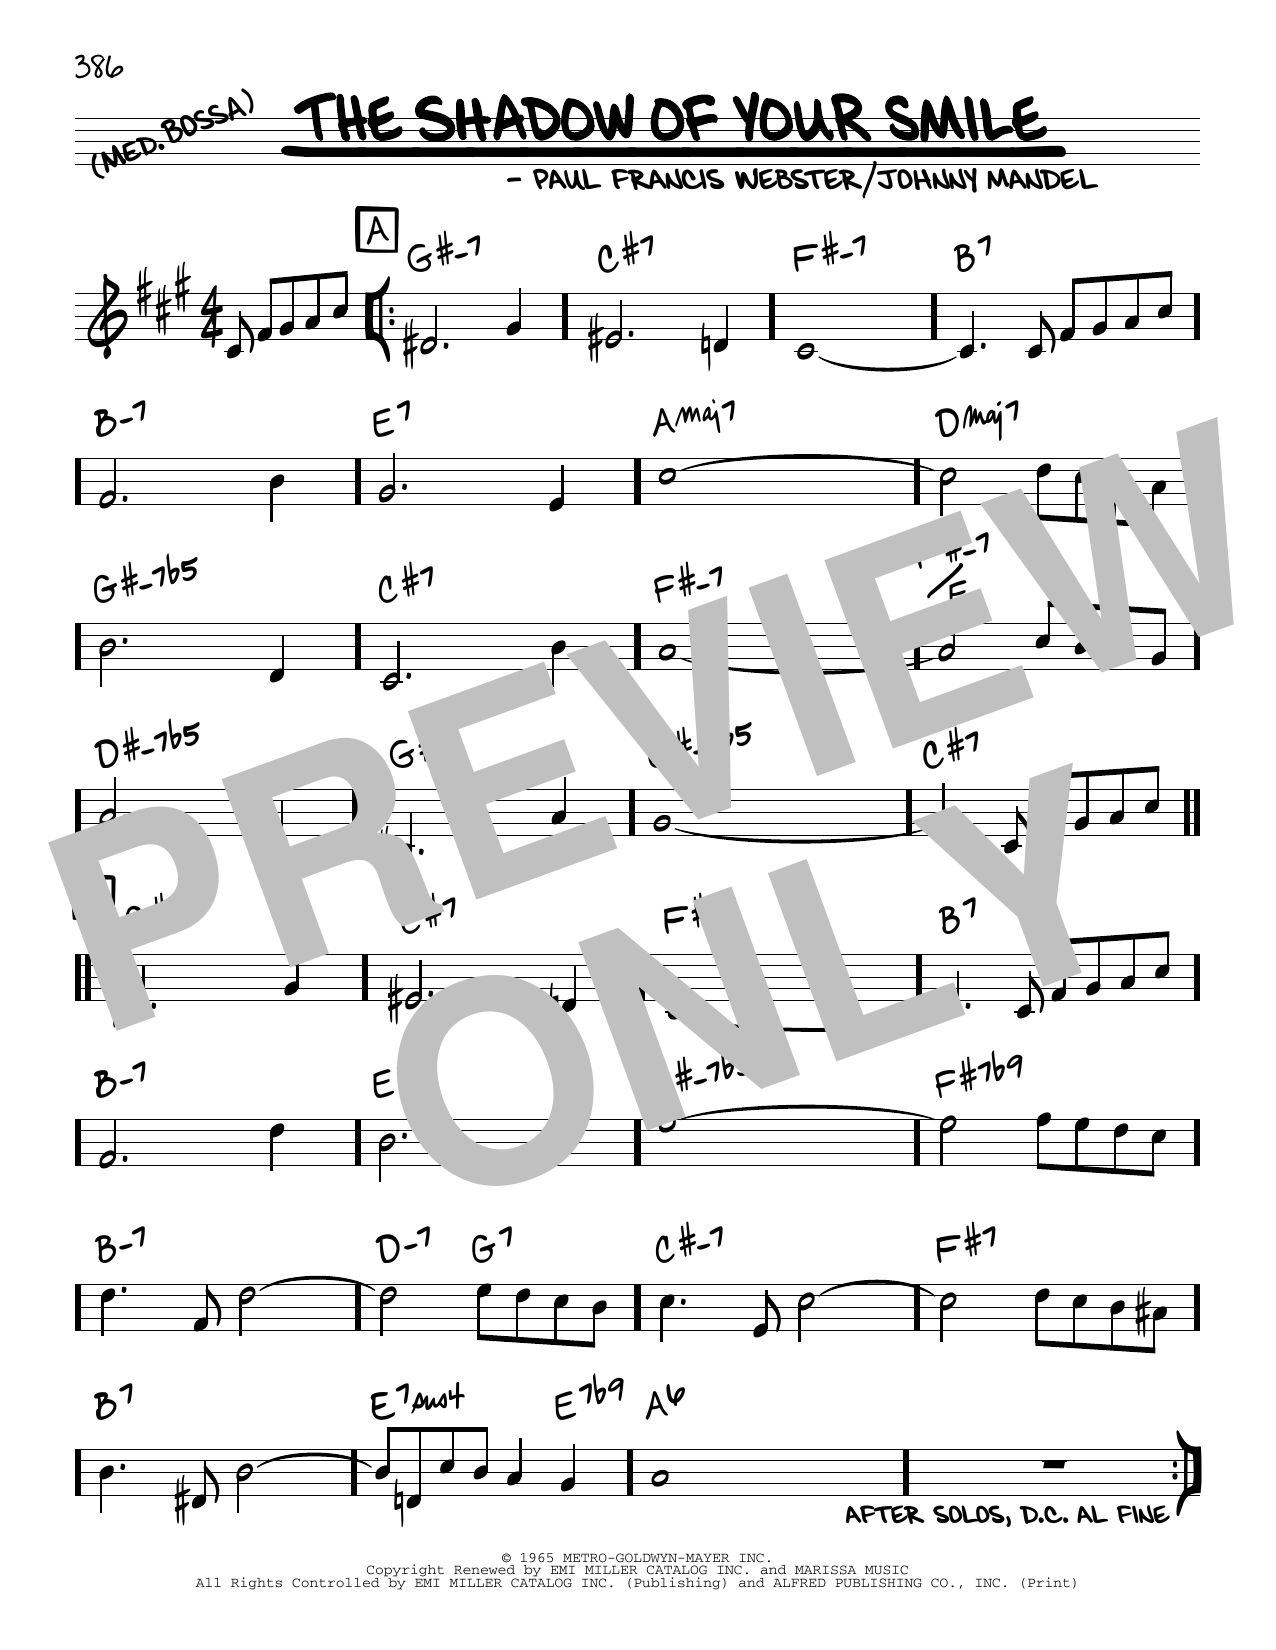 Johnny Mandel and Paul Francis Webster The Shadow Of Your Smile sheet music notes and chords. Download Printable PDF.